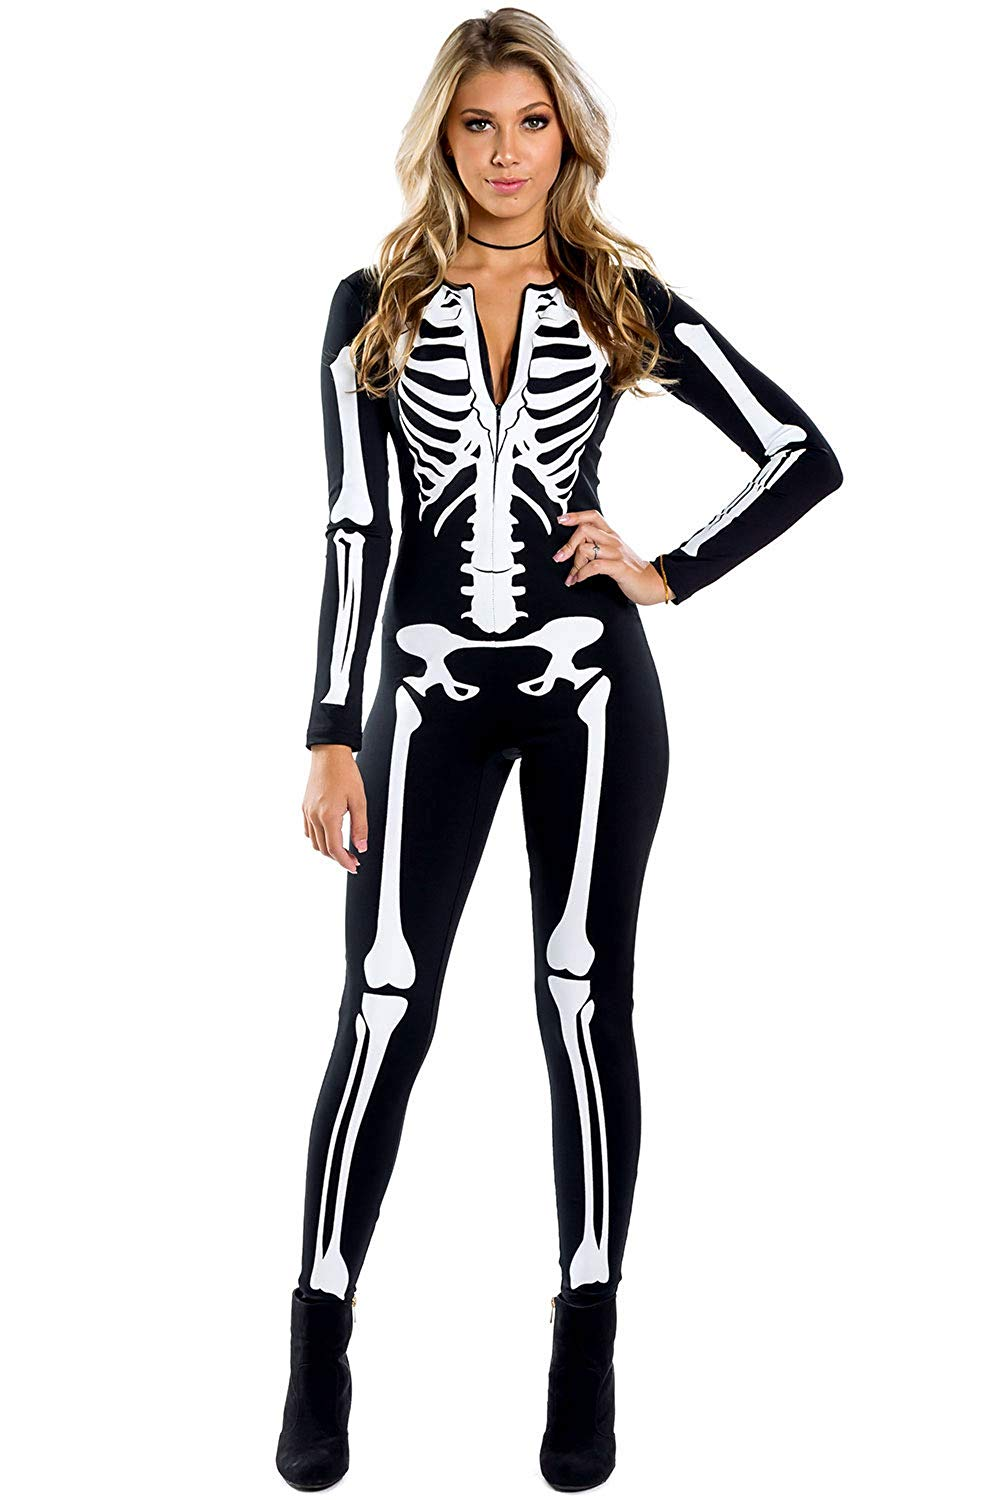 Amazon.com: Tipsy Elves Women's Skeleton Halloween Costume Bodysuit Back Printing - Sexy Skeleton Costume Jumpsuit Female: Clothing